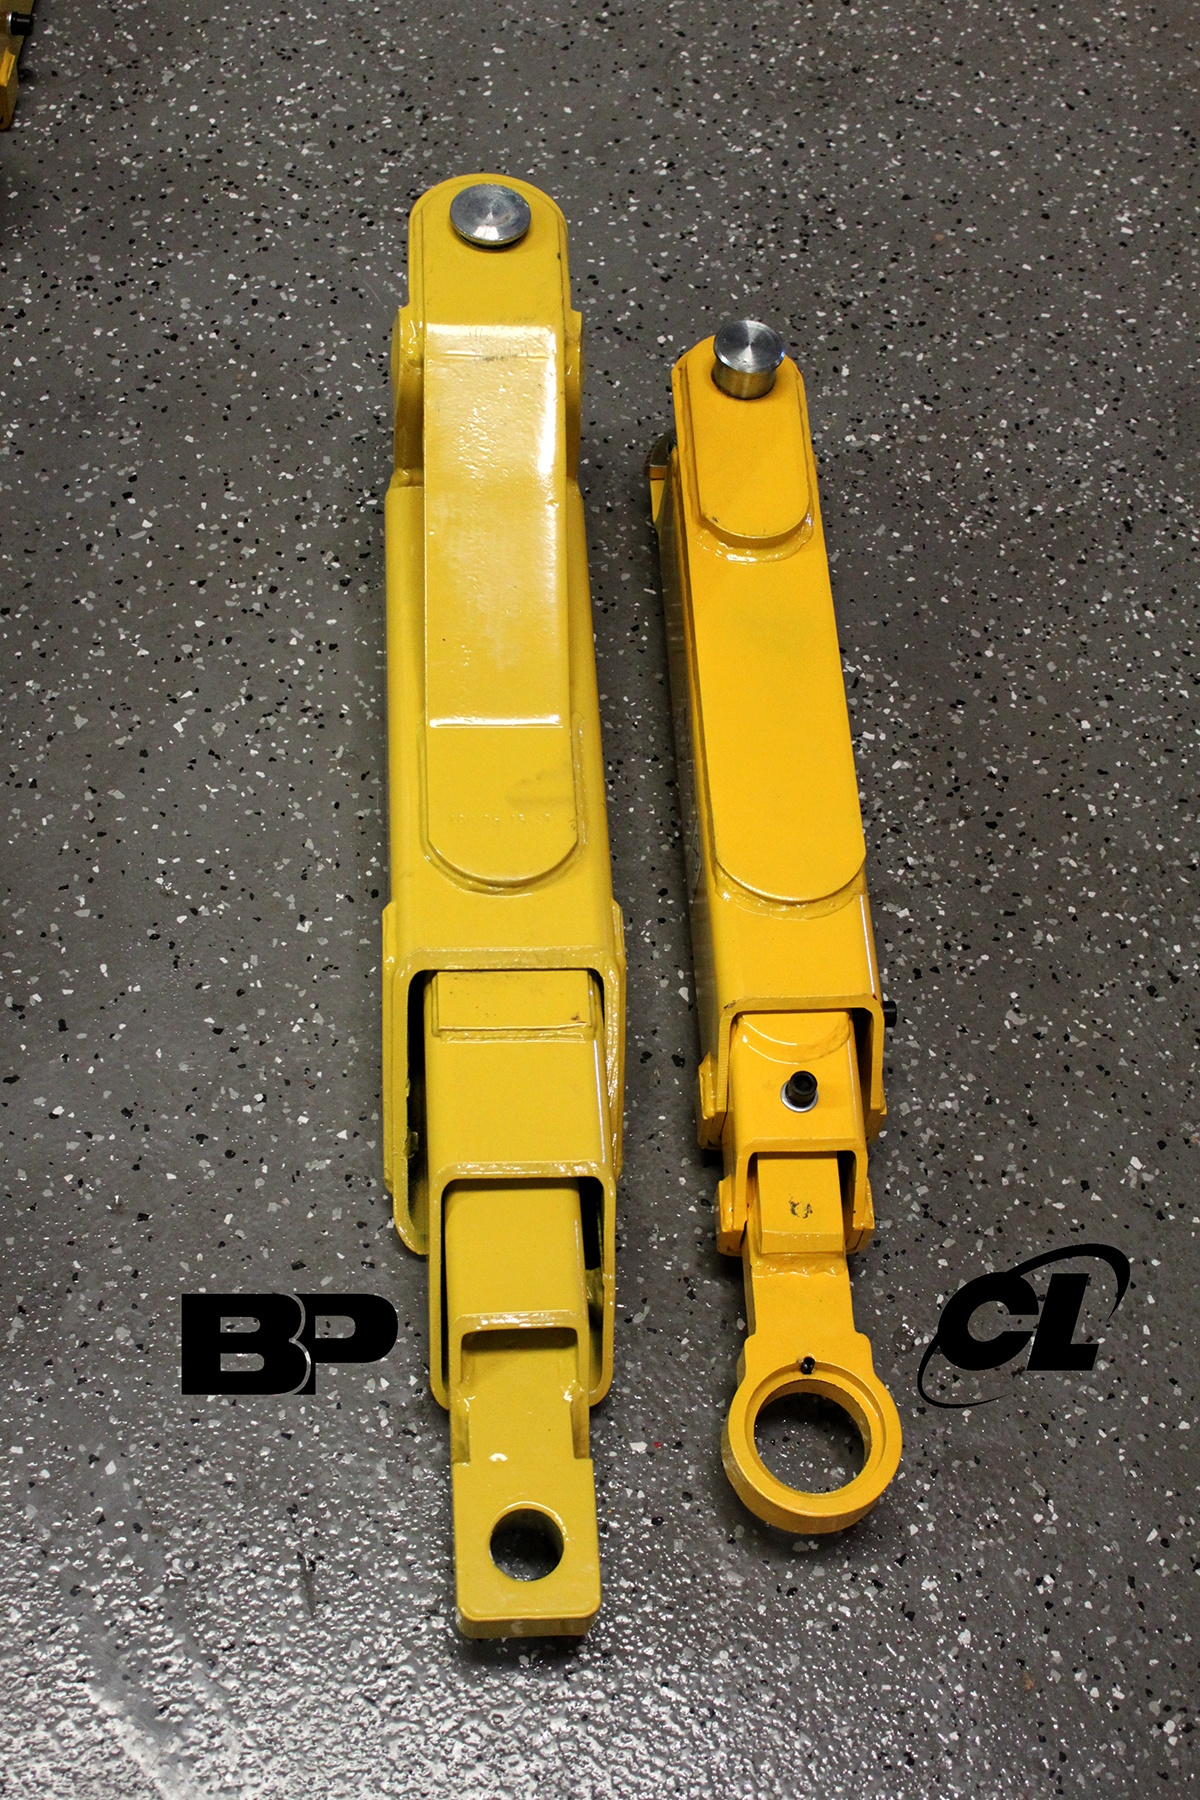 BendPak 2-Post Lifting Arms Compared to Challenger